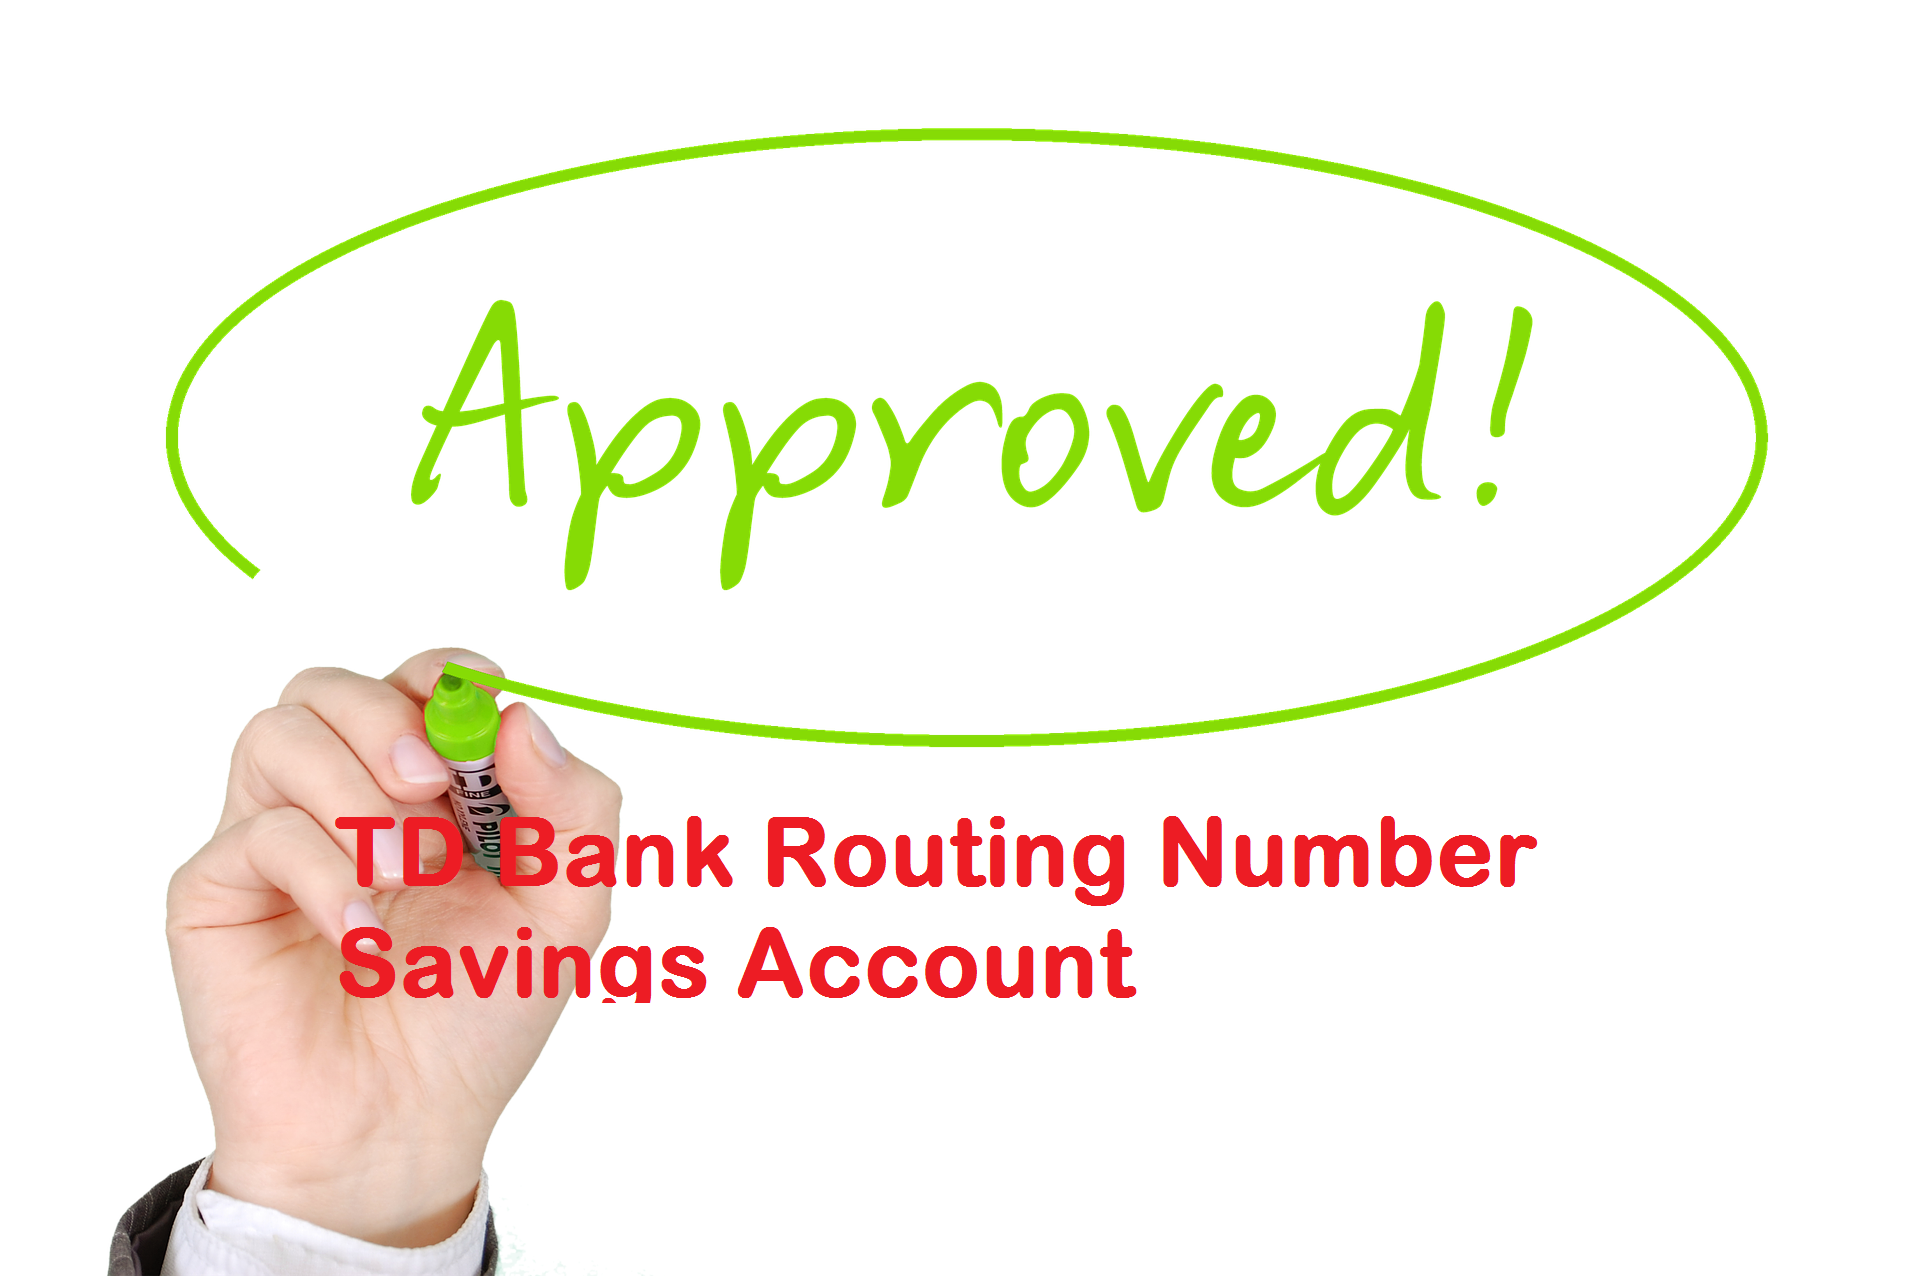 TD Bank Routing Number Savings Account